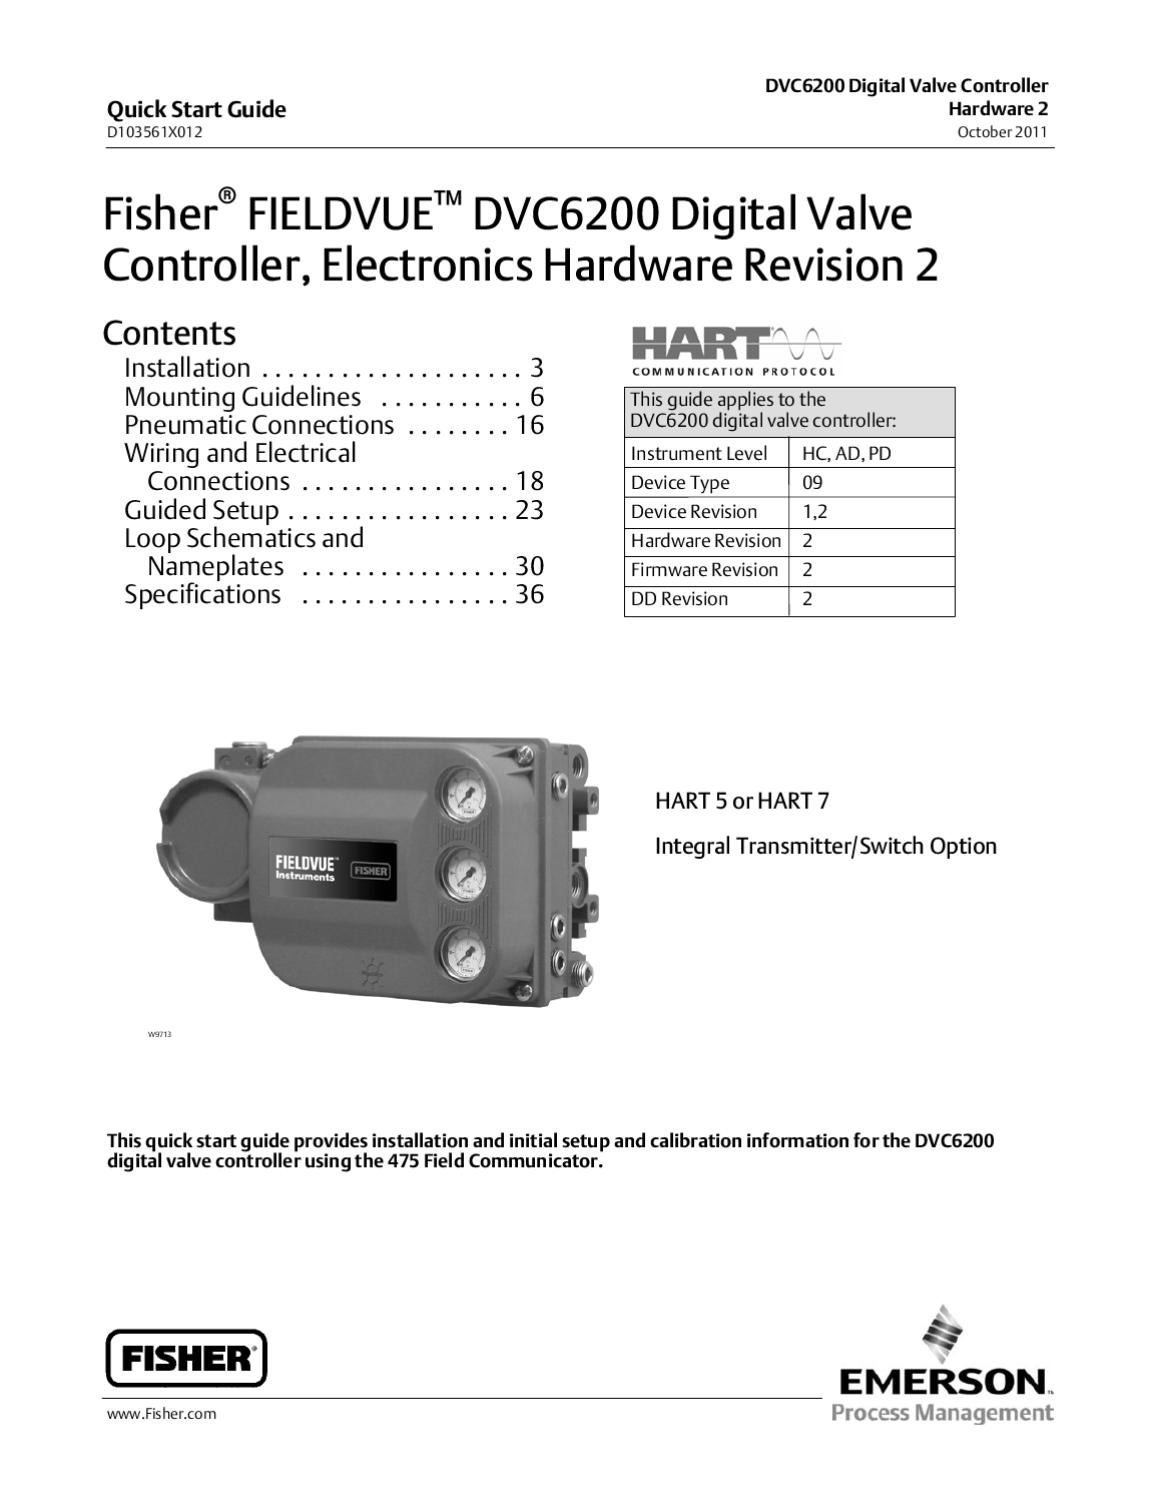 page_1 dvc6200 quick start guide elctrncs hrdwre rev 2 oct 2011 by rmc fisher dvc 2000 wiring diagram at aneh.co